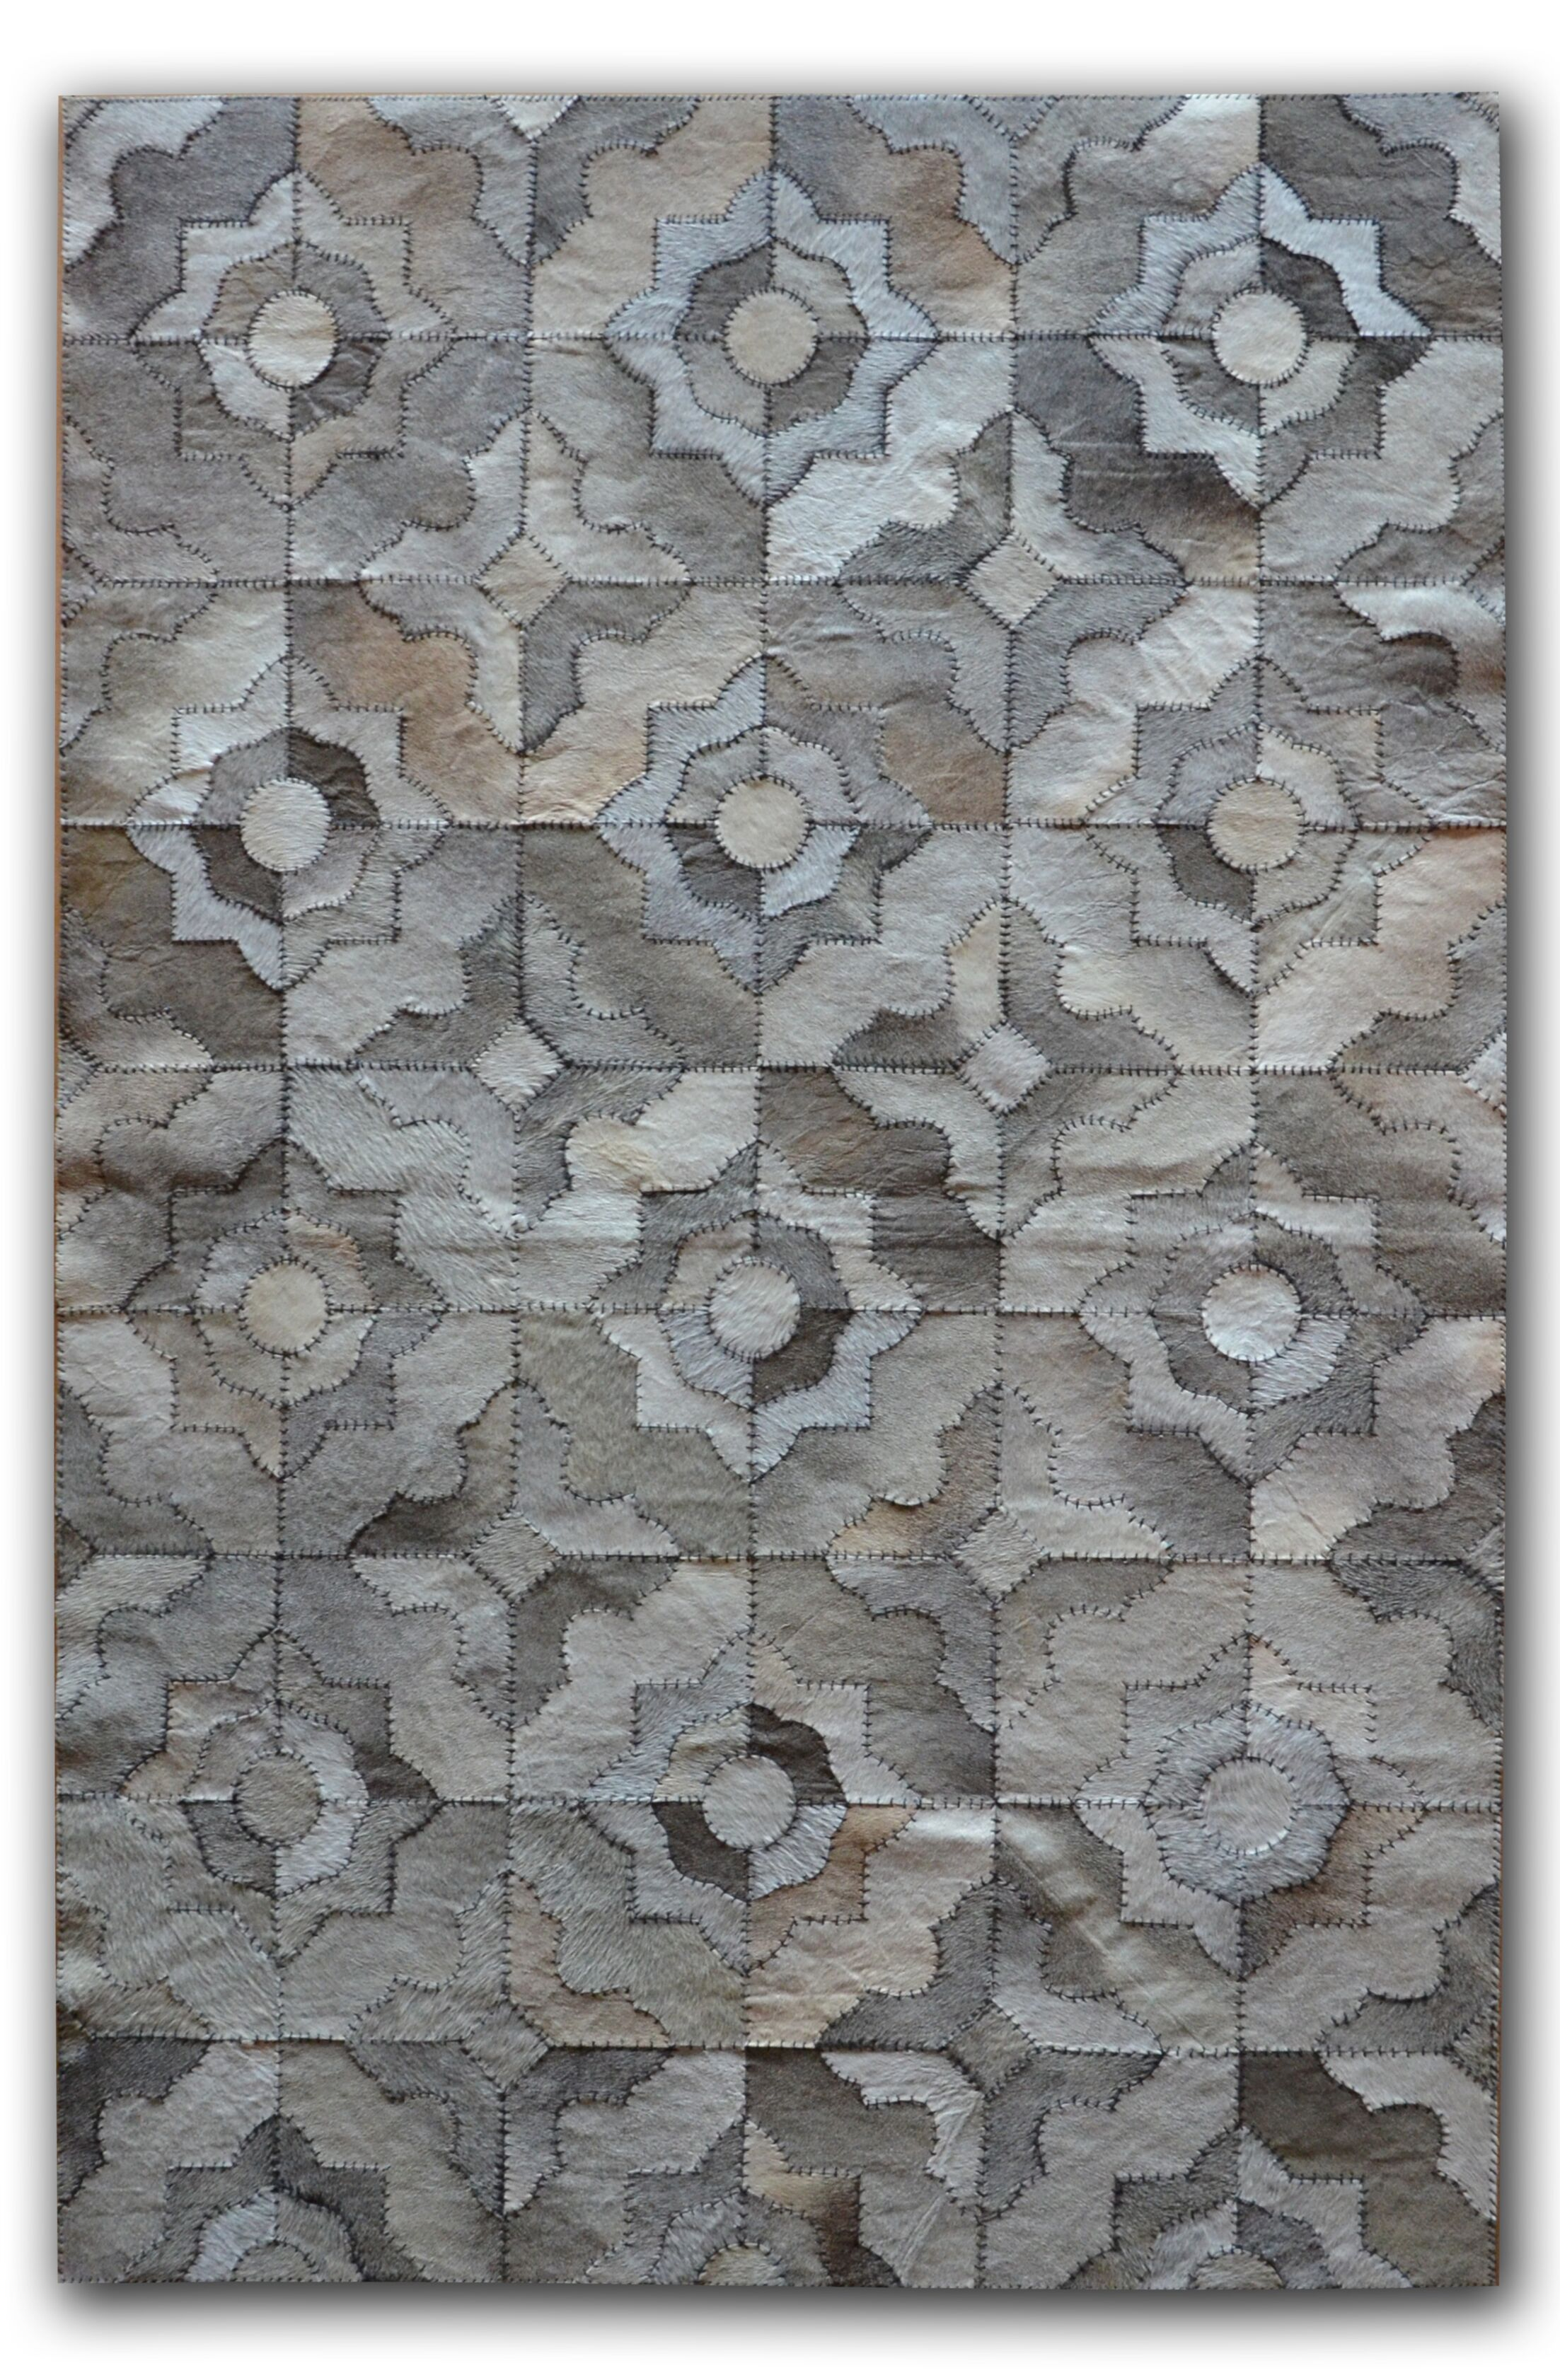 Bettis Natural Stitch Hand-Tufted Cowhide Marrakeche Gray Area Rug Rug Size: Rectangle 5' x 8'